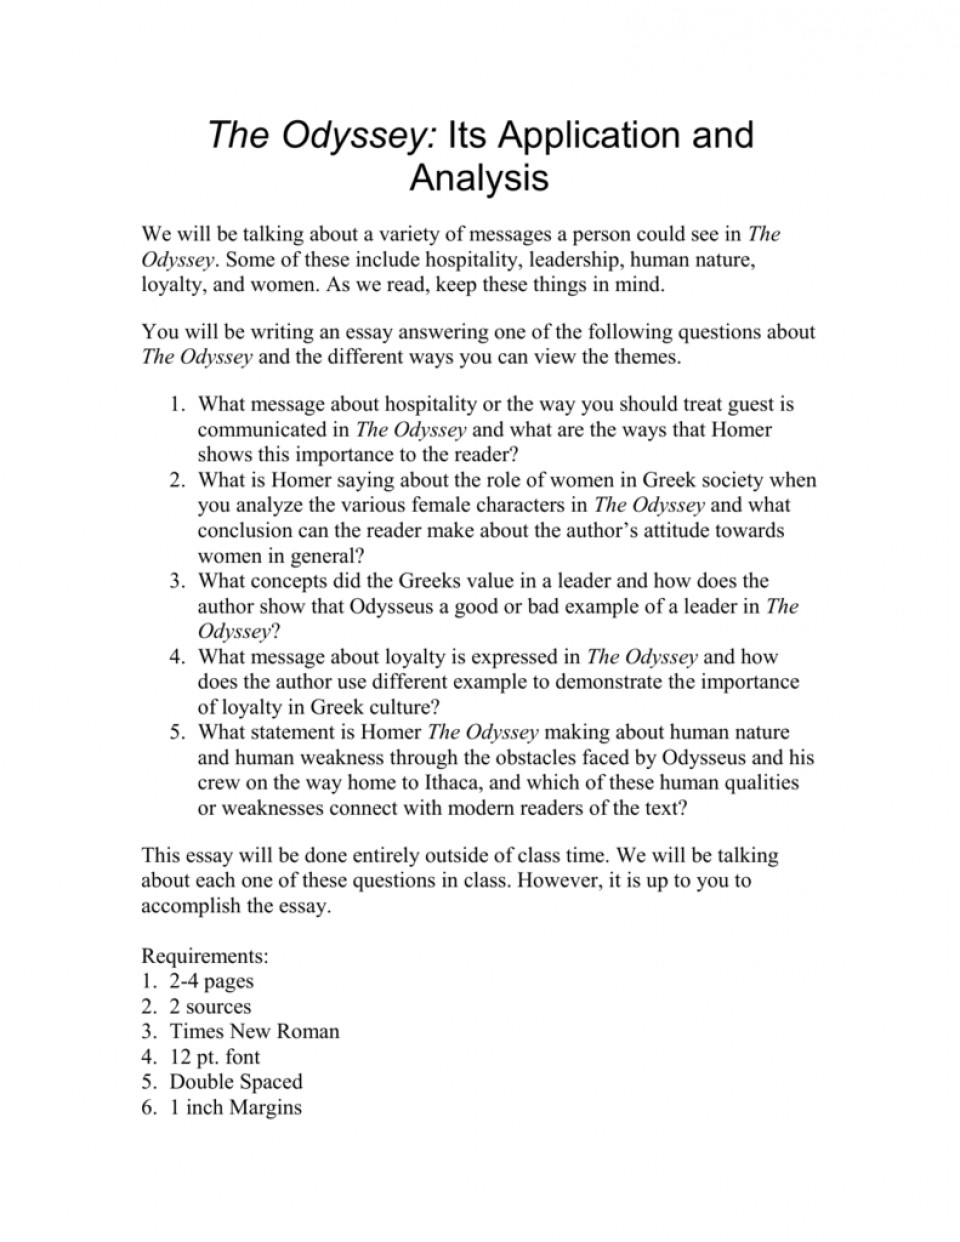 009 Essay Example Odyssey Topics 008004991 1 Amazing Prompt Prompts 960